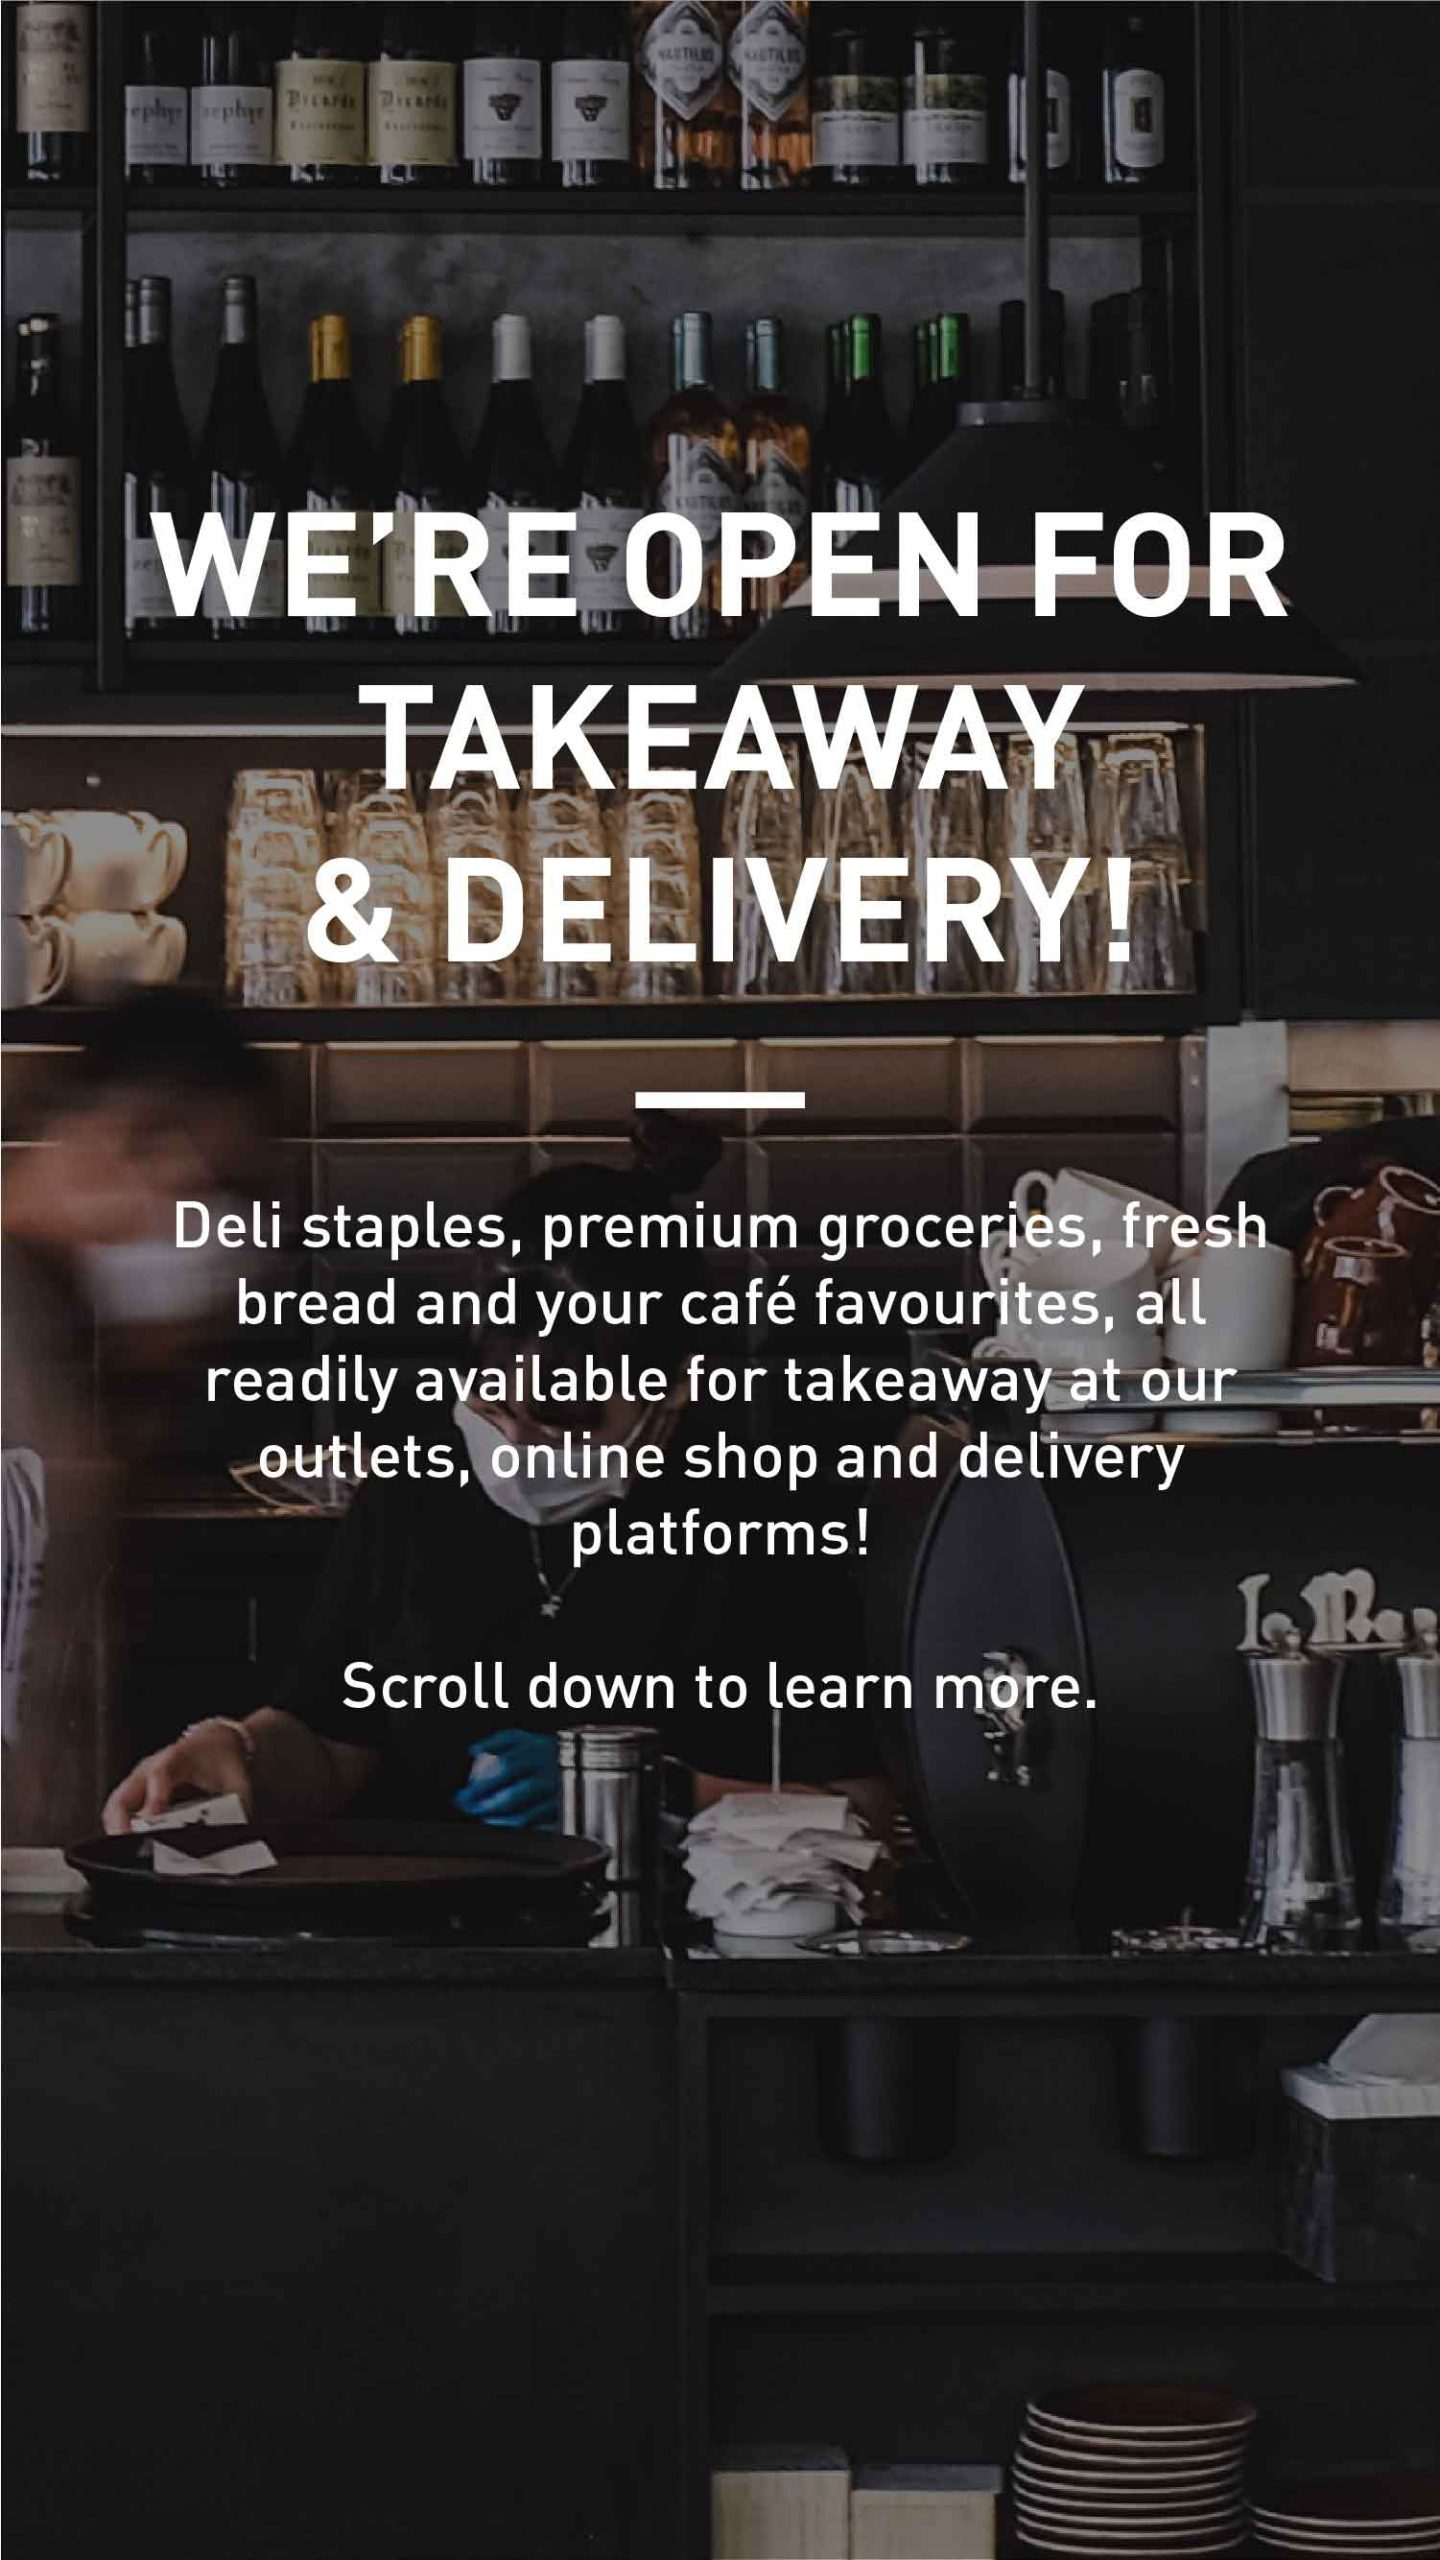 We're open for takeaway and delivery!